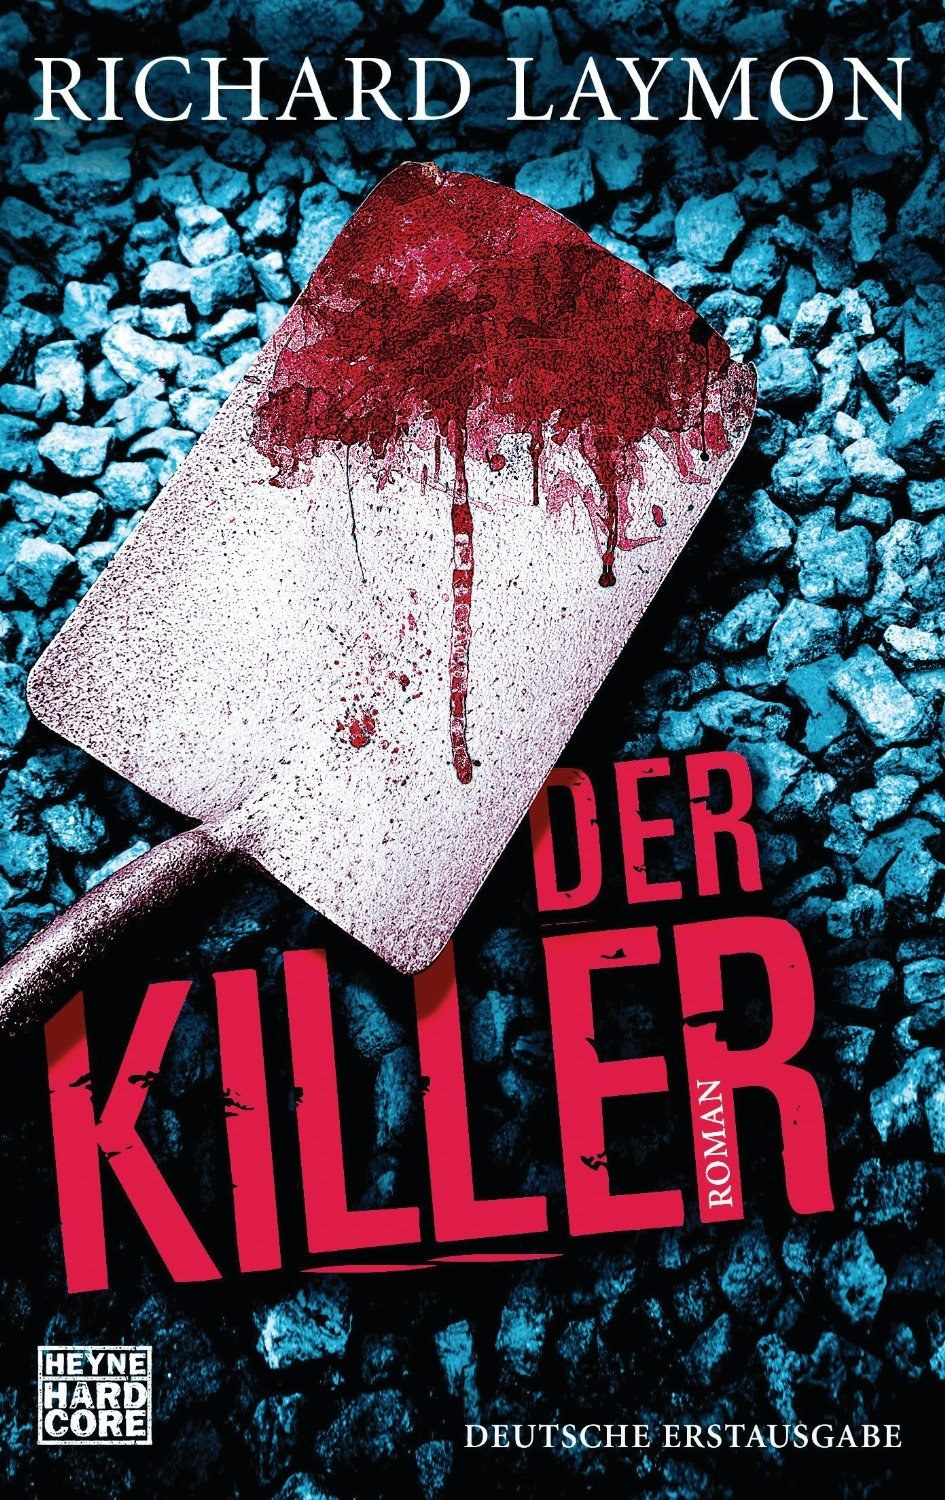 http://nothingbutn9erz.blogspot.co.at/2015/04/der-killer-richard-laymon.html